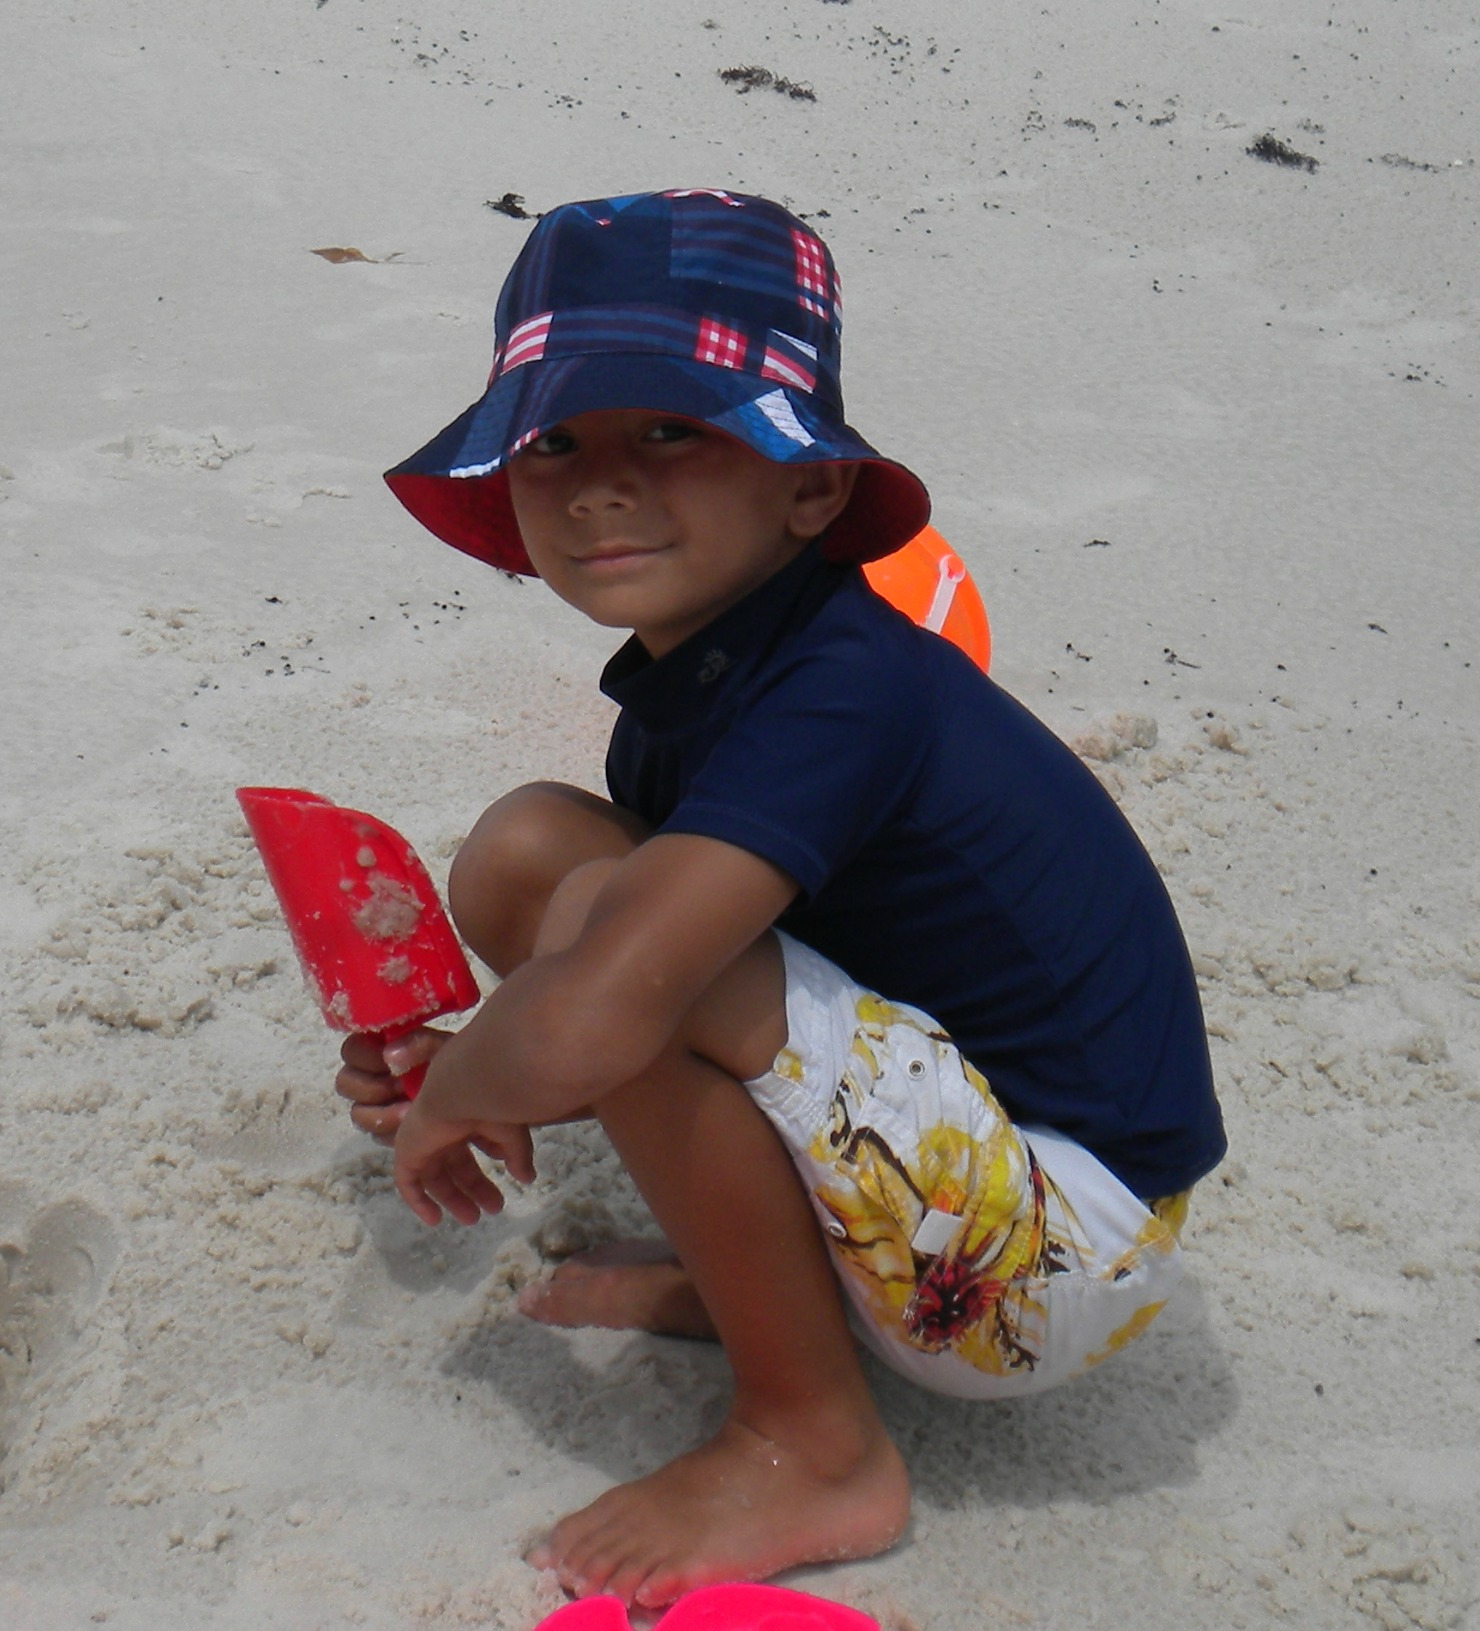 sun protection clothing for kids